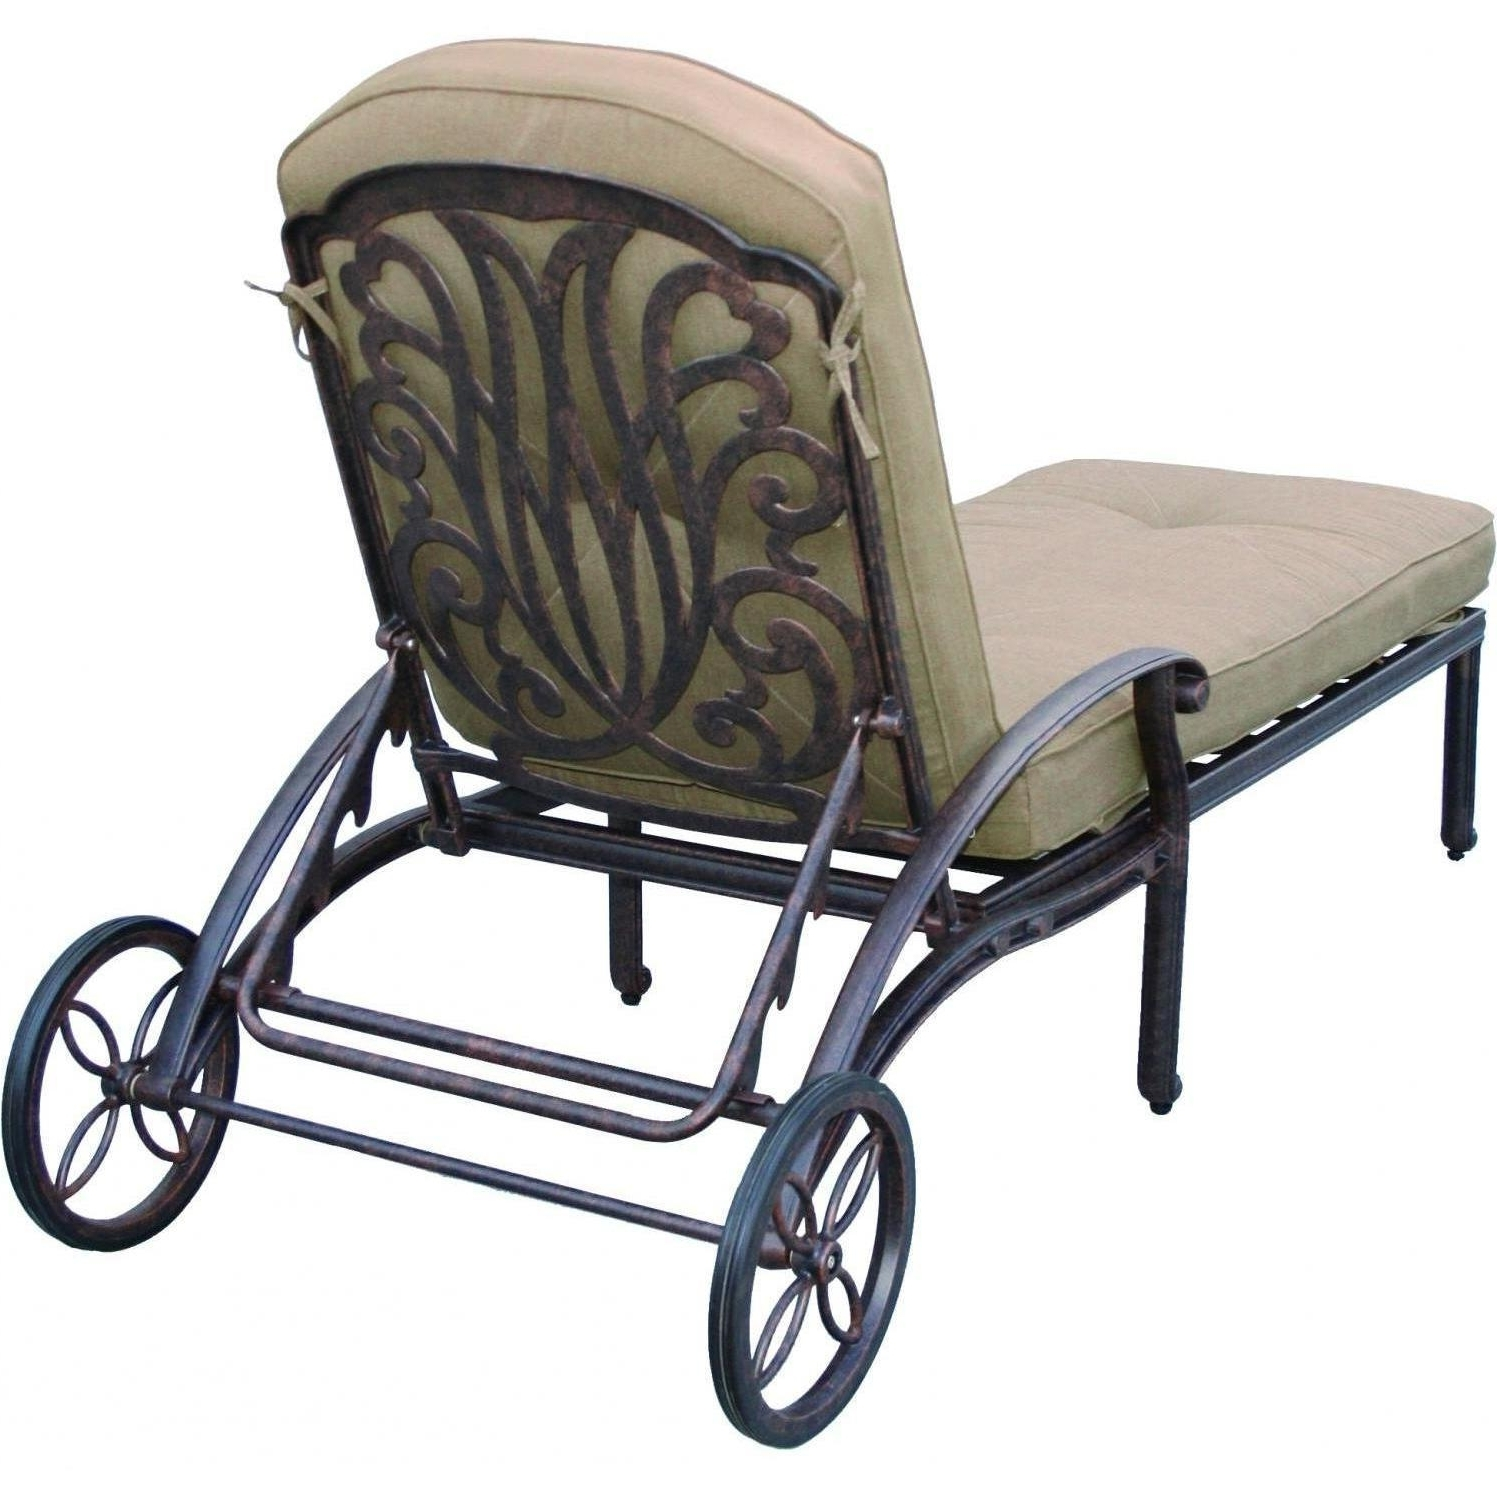 Latest Darlee Elisabeth Cast Aluminum Patio Chaise Lounge : Ultimate Patio Pertaining To Cast Aluminum Chaise Lounges (View 3 of 15)